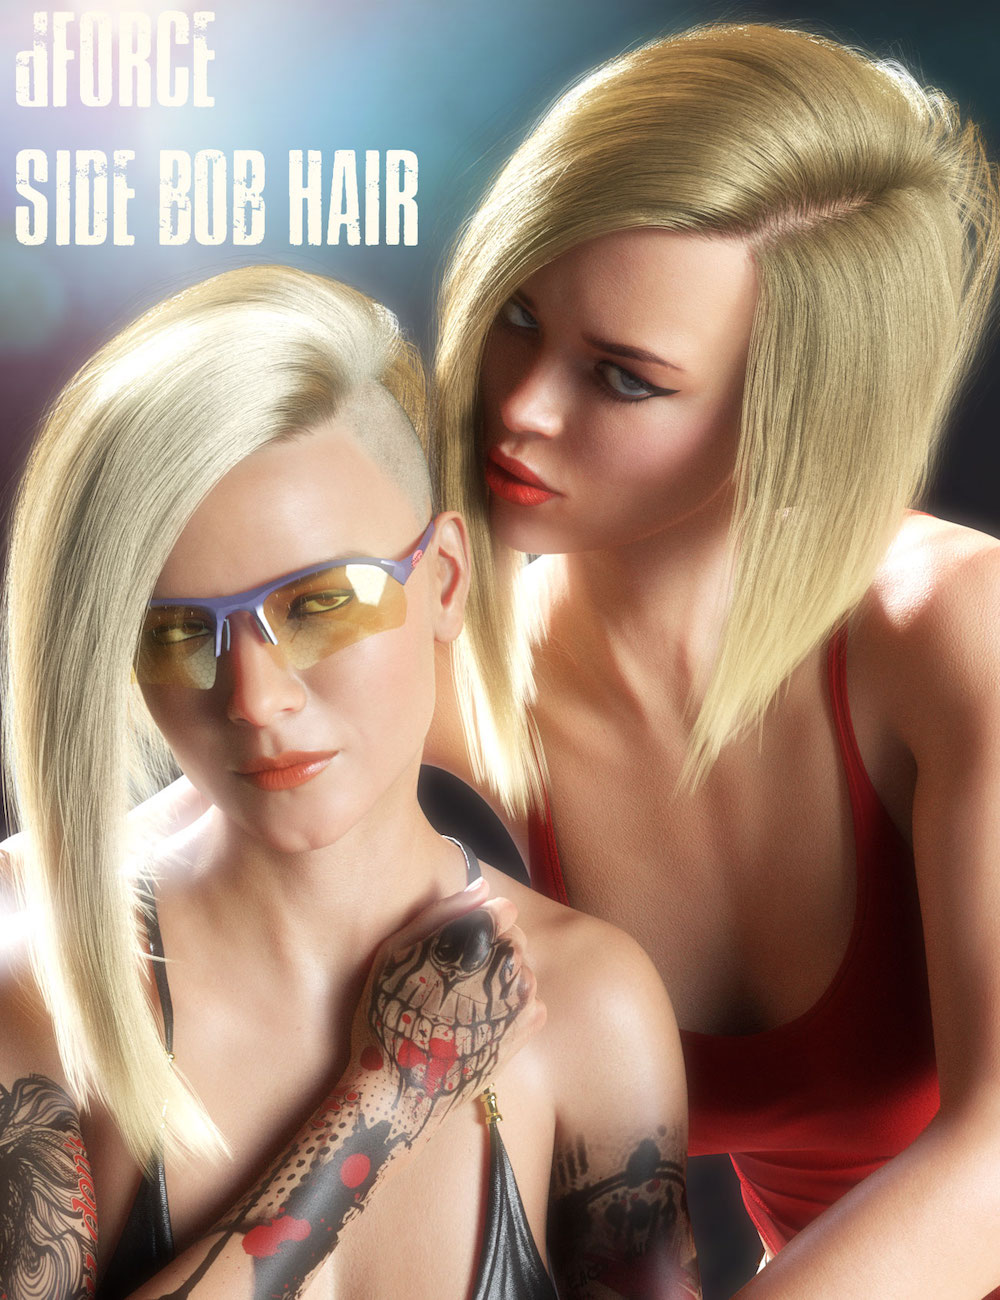 dForce Side Bob Hair for Genesis 8 Female(s) by: Linday, 3D Models by Daz 3D